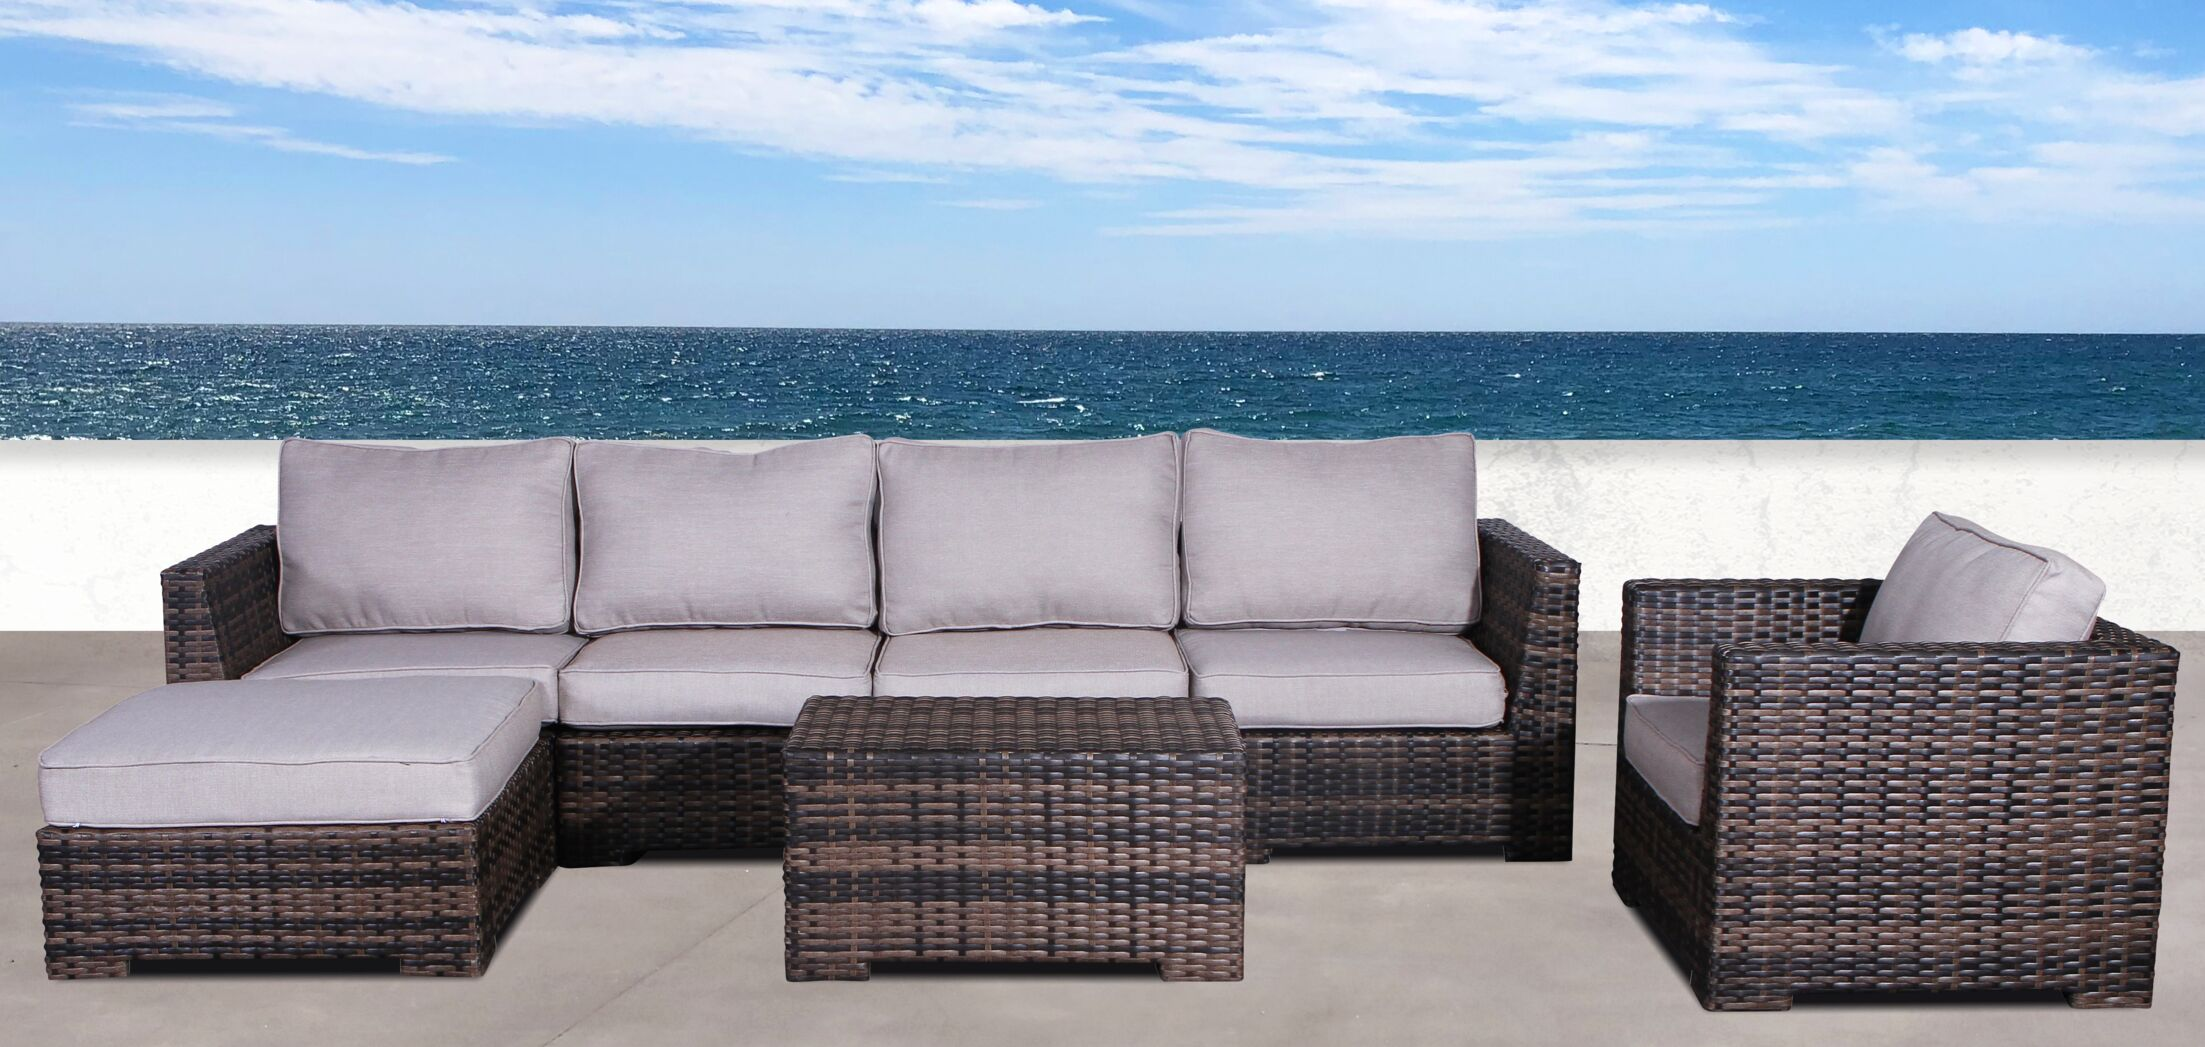 Pierson Resort Club 4 Piece Sectional Set with Cushions